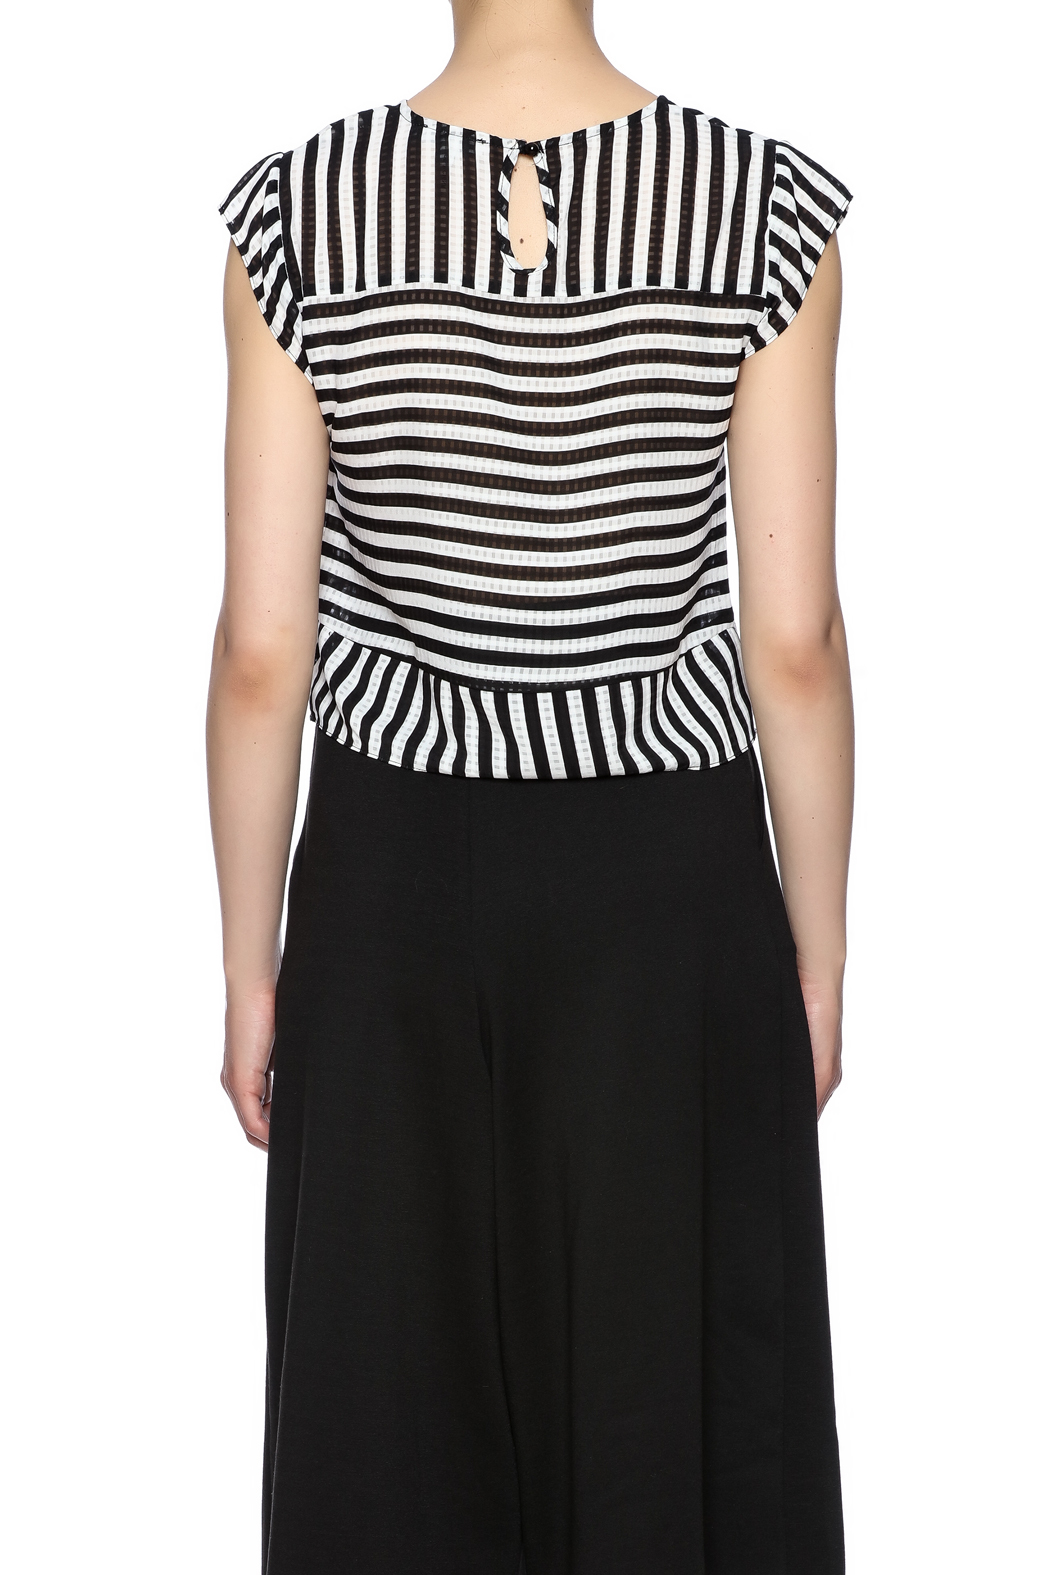 Lucy Paris Stripe Short Sleeve - Back Cropped Image